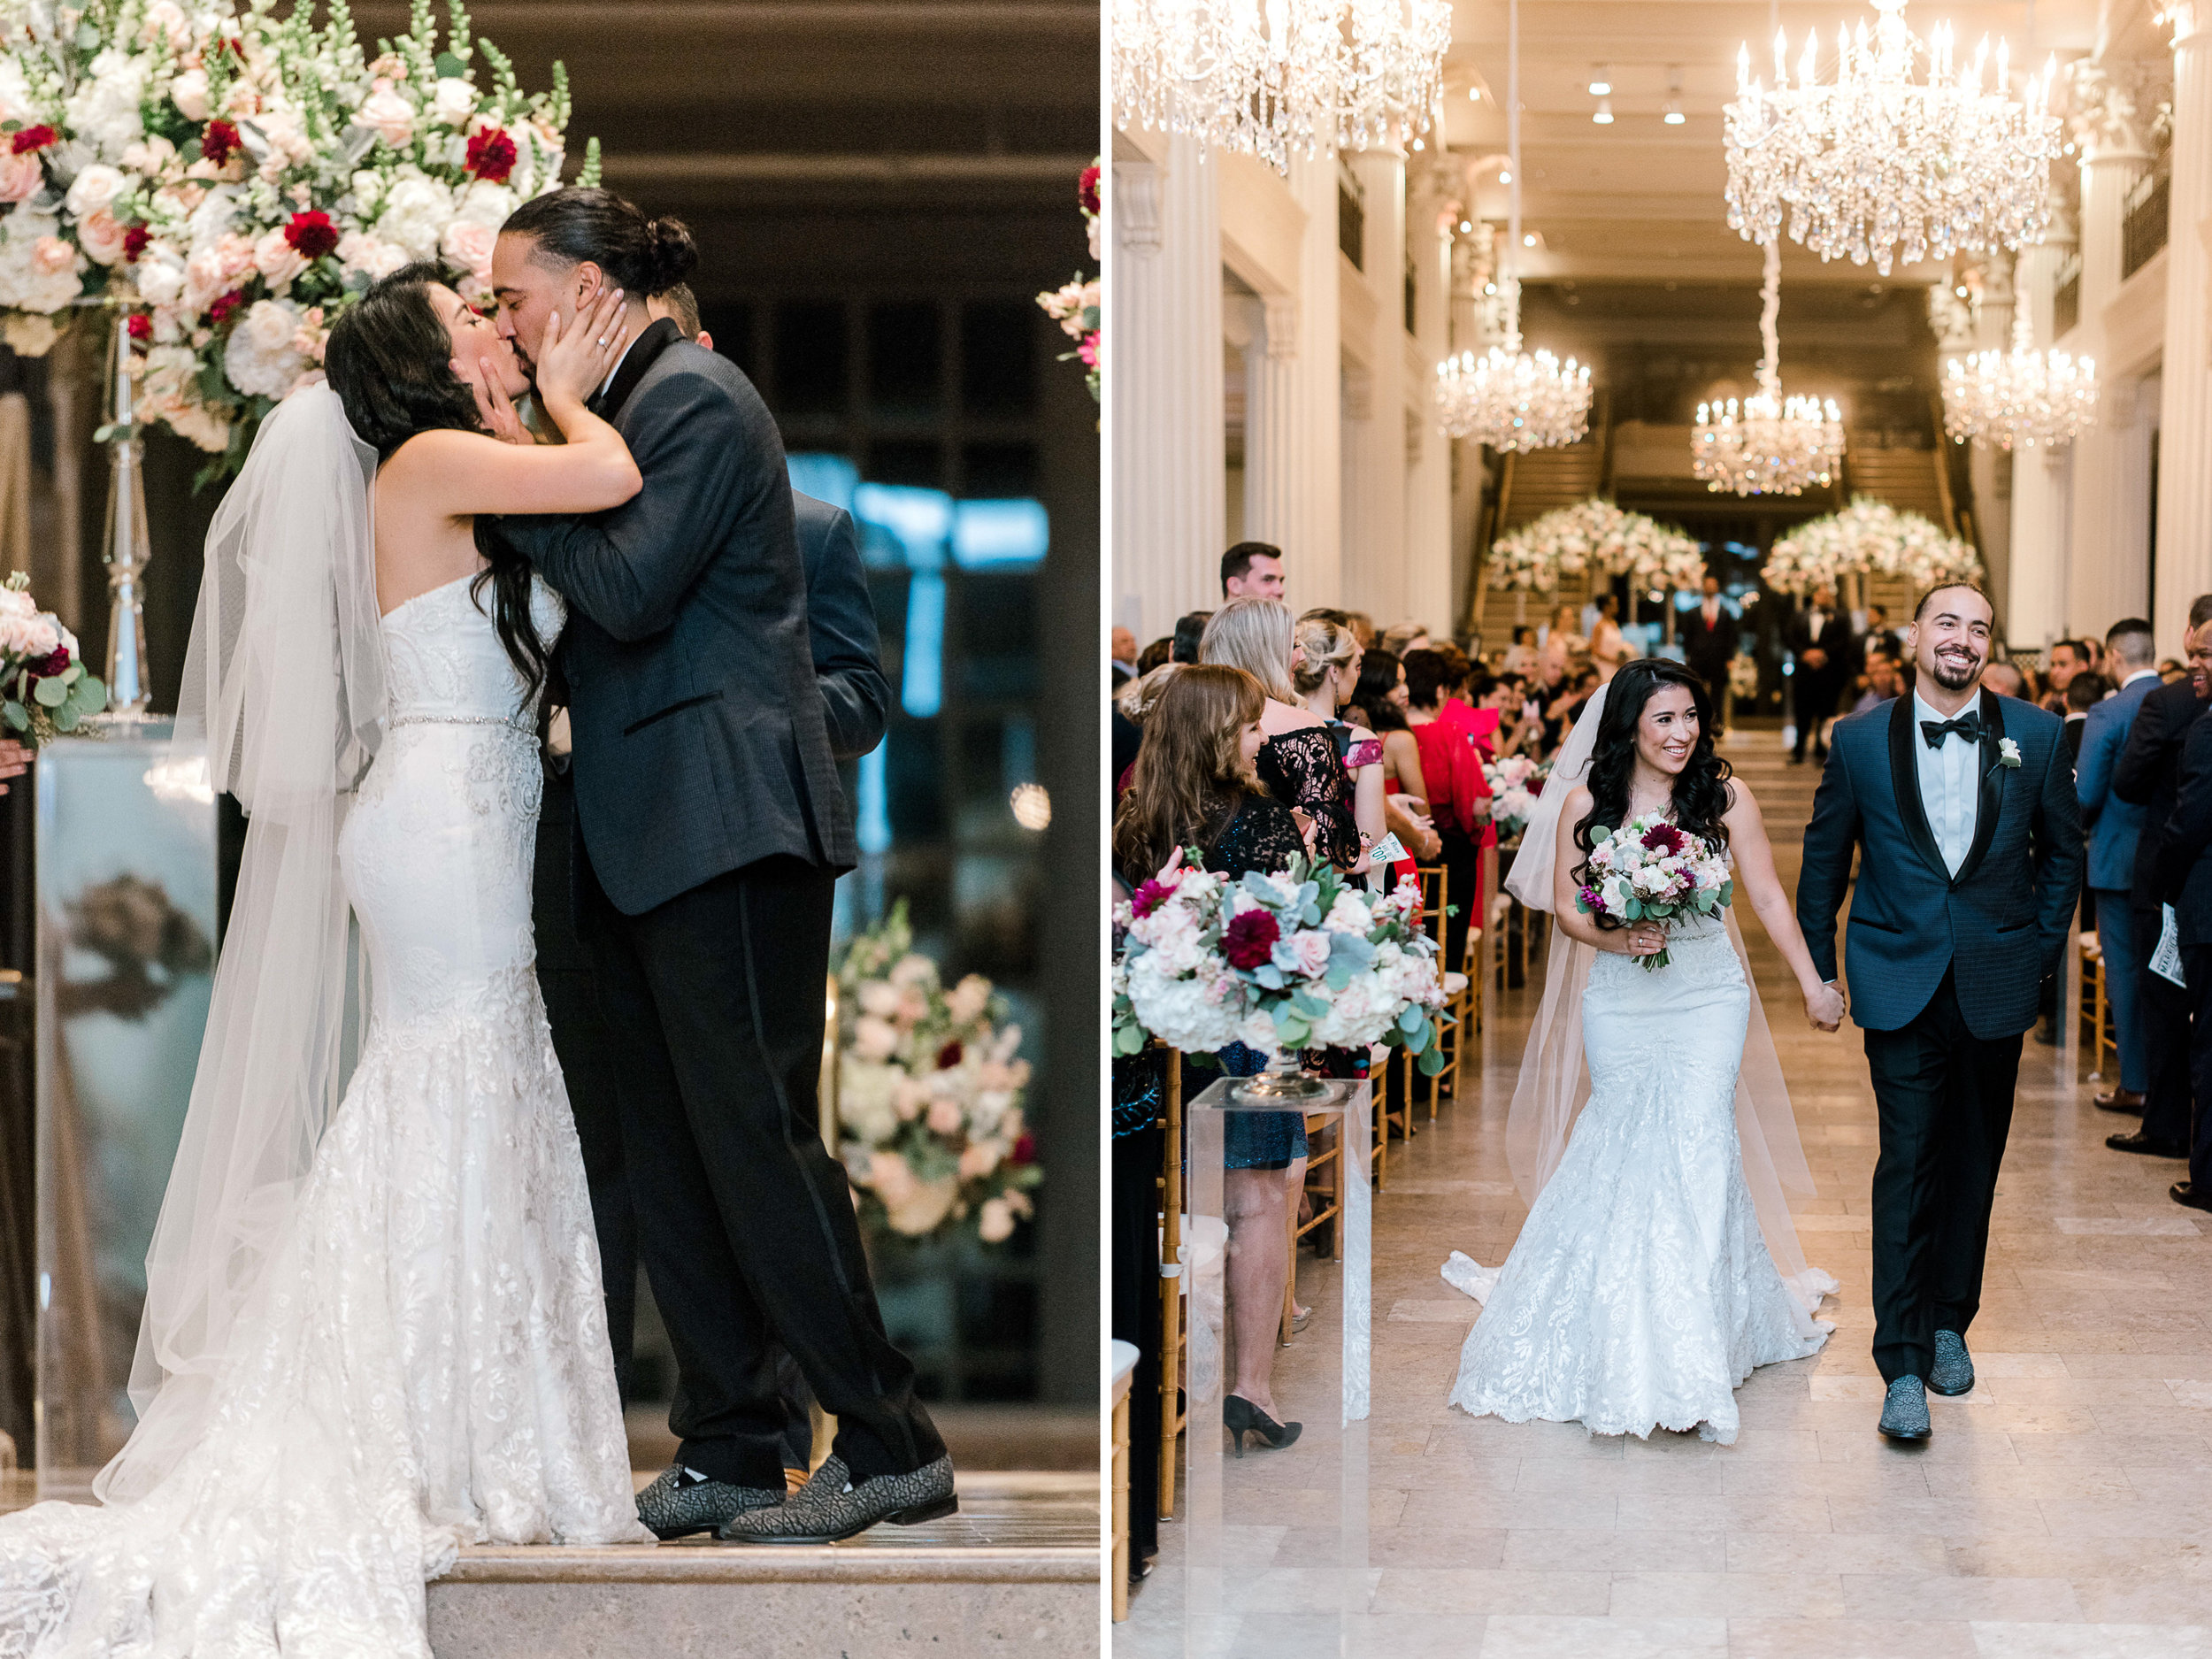 Houston-Wedding-Fine-Art-Film-Photographer-Belle-Events-Belle-of-the-Ball-Anthony-Rendon-Washington-Nationals-The-Corinthian-Style-Me-Pretty-220.jpg